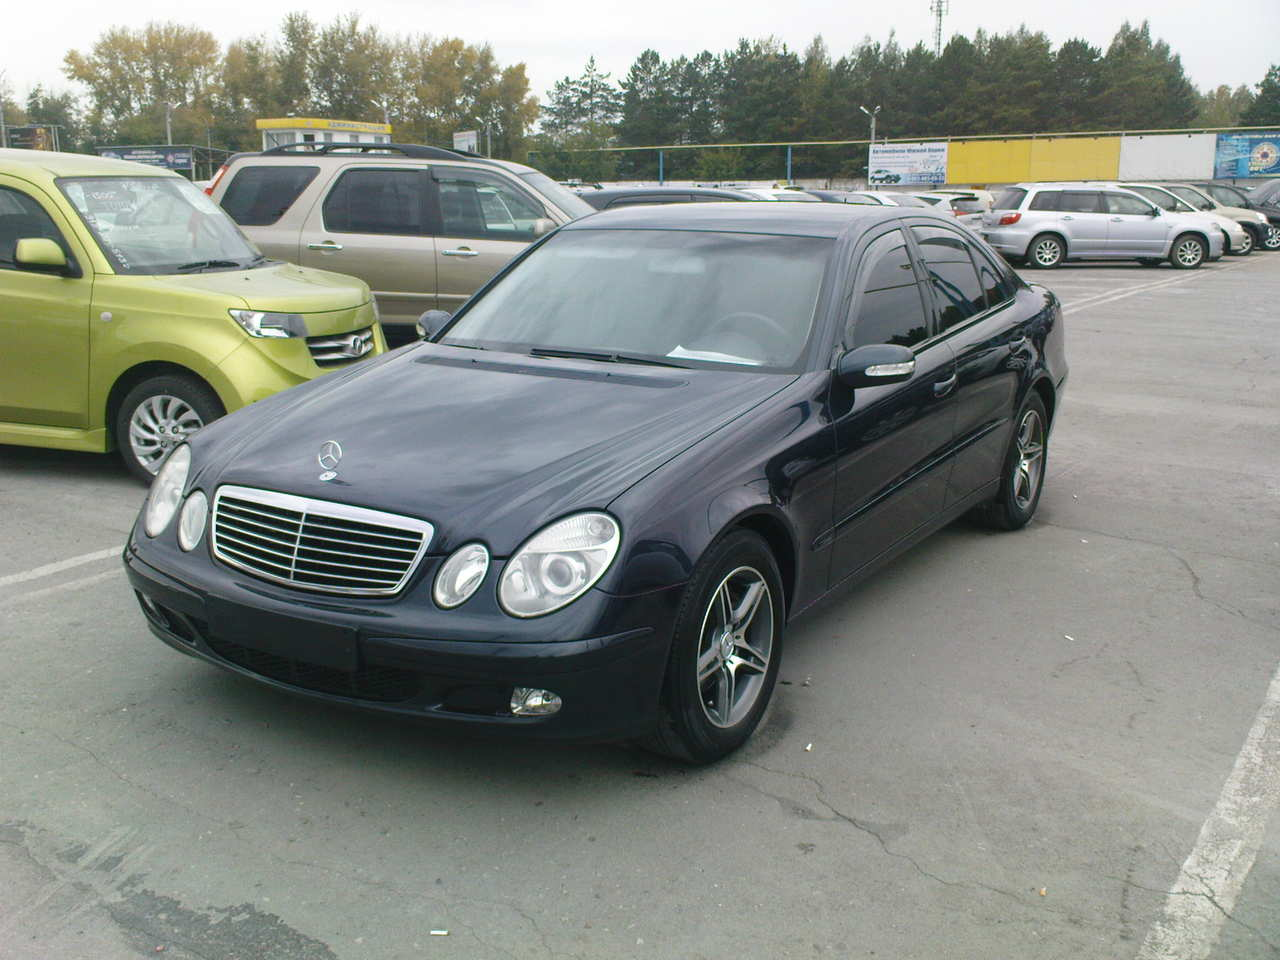 2002 mercedes benz e class pictures fr or rr. Black Bedroom Furniture Sets. Home Design Ideas